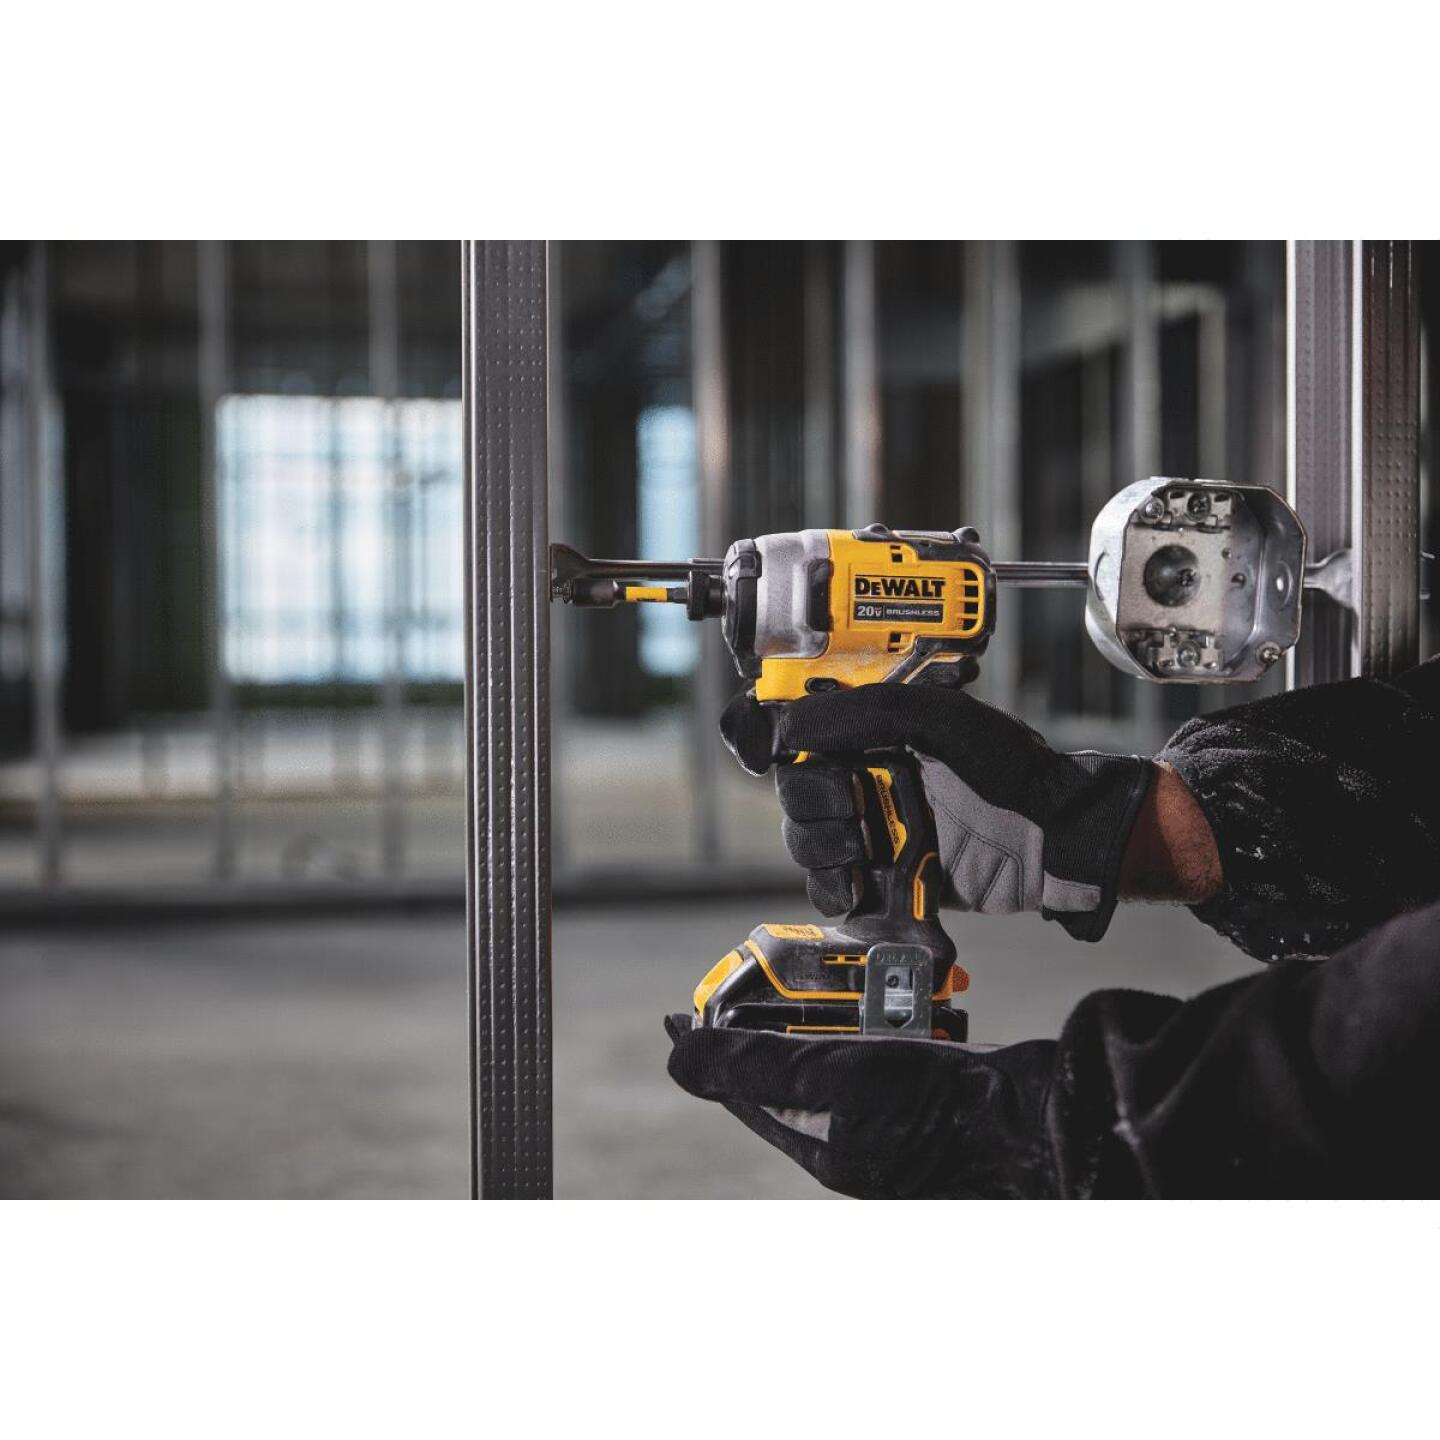 Dewalt Atomic 20 Volt MAX Lithium-Ion 1/4 In. Hex Brushless Cordless Impact Driver Kit Image 2